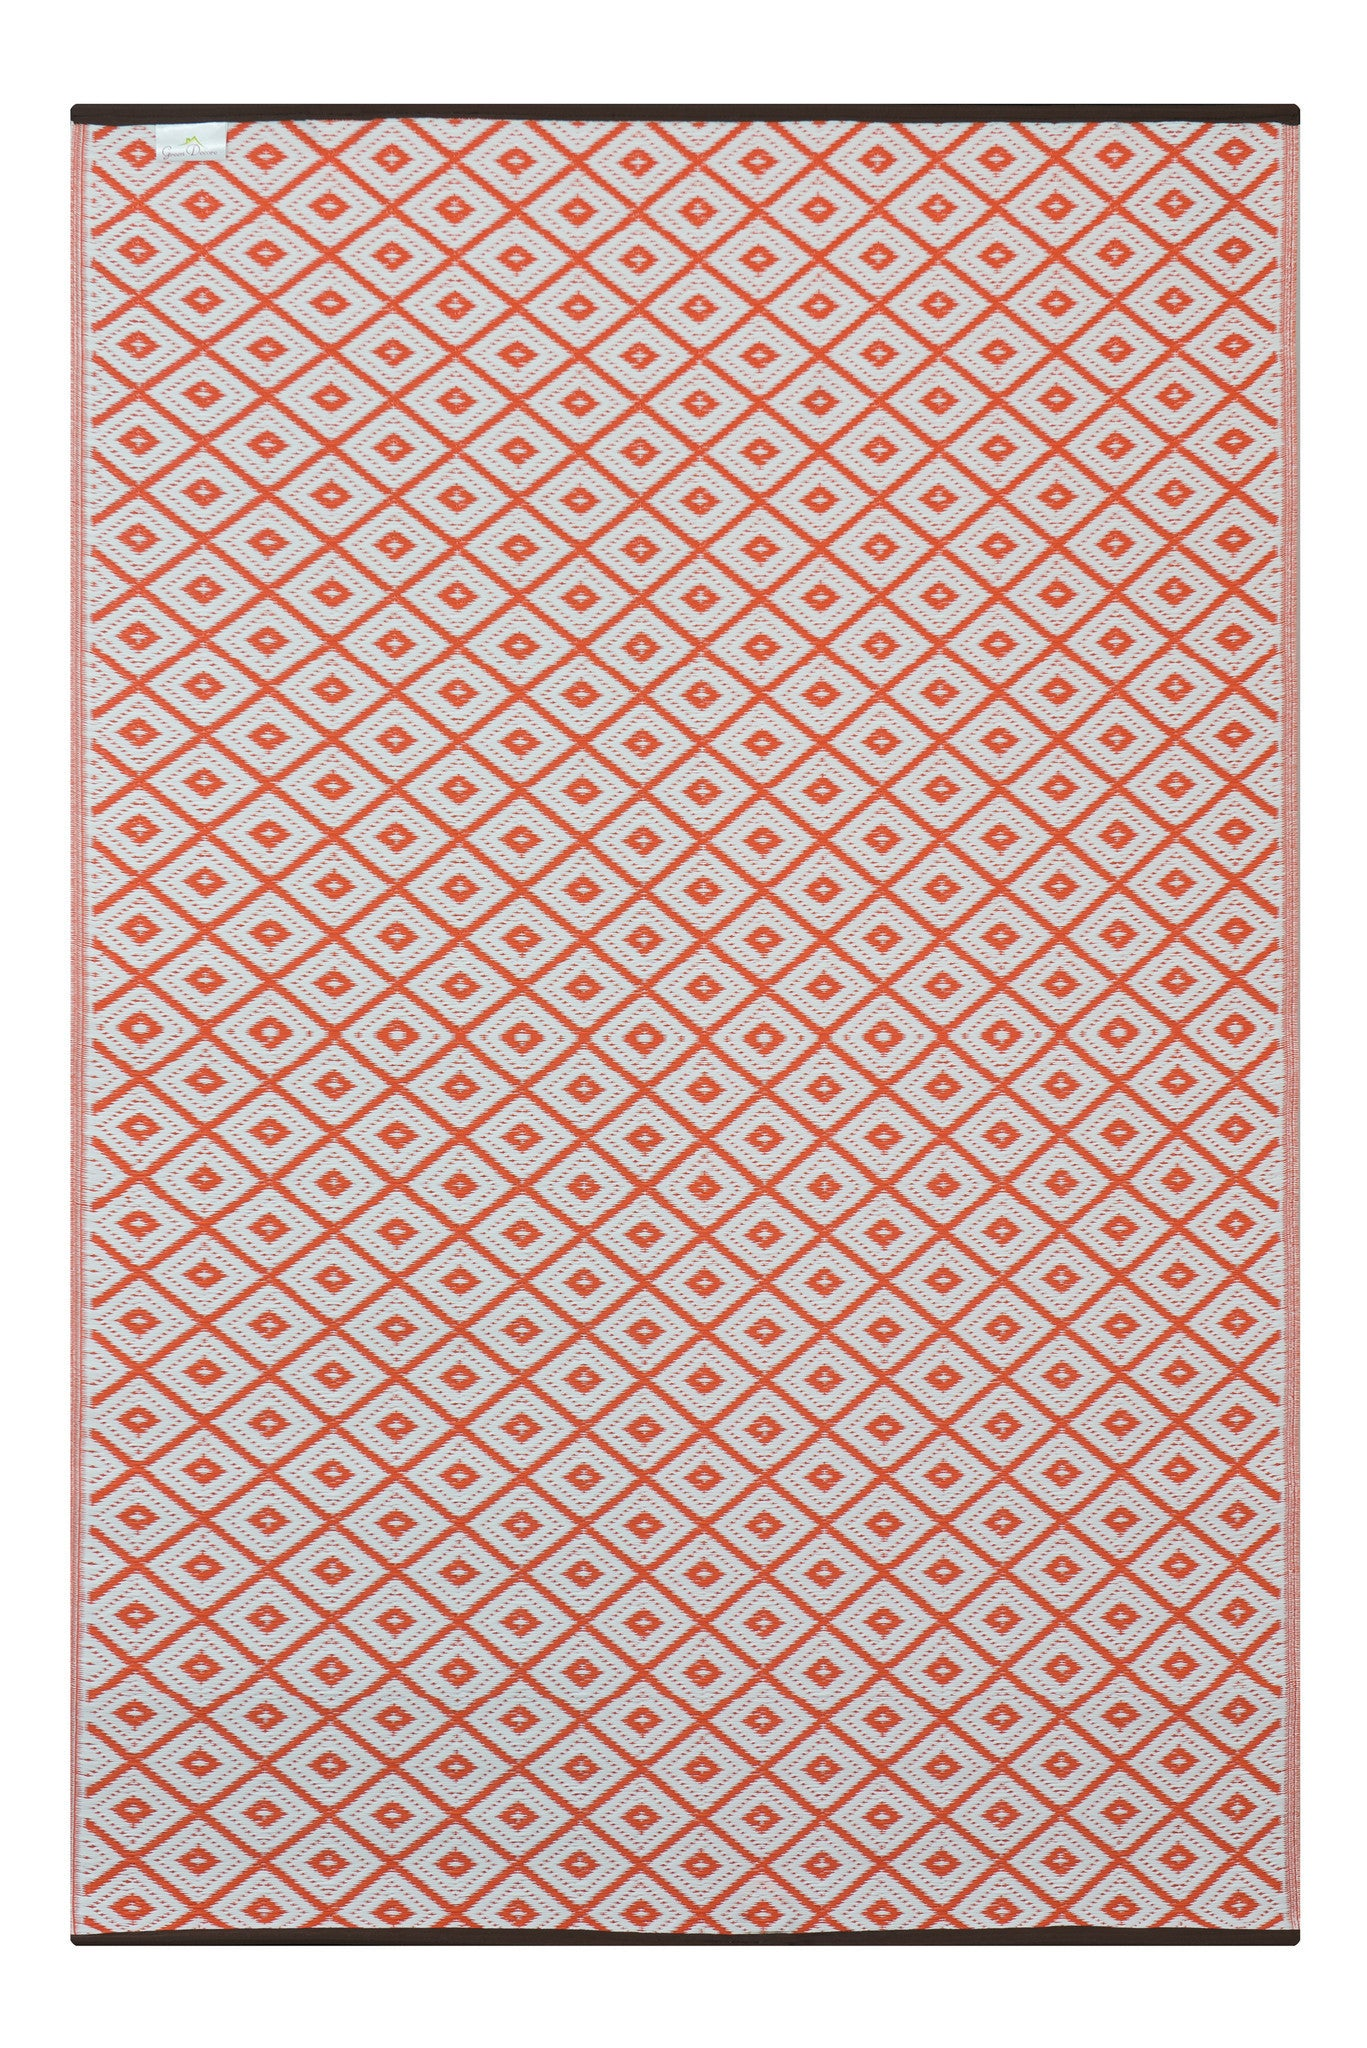 Outdoor Rugs Recycled Plastic Green Decore